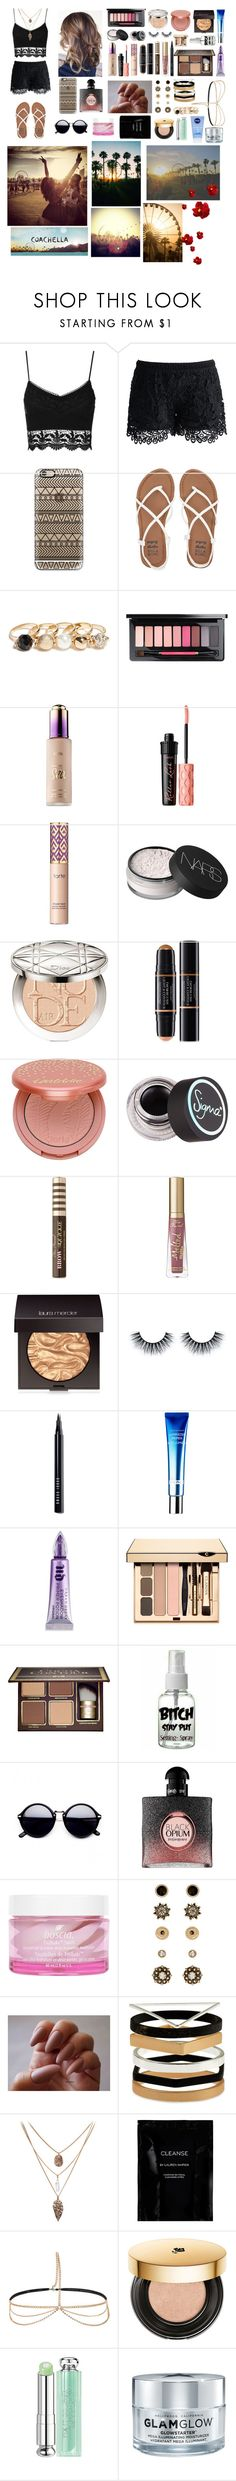 """Coachellaaaa"" by ajlamutevelic ❤ liked on Polyvore featuring Topshop, Chicwish, Casetify, Billabong, GUESS, tarte, Benefit, NARS Cosmetics, Christian Dior and Sigma"